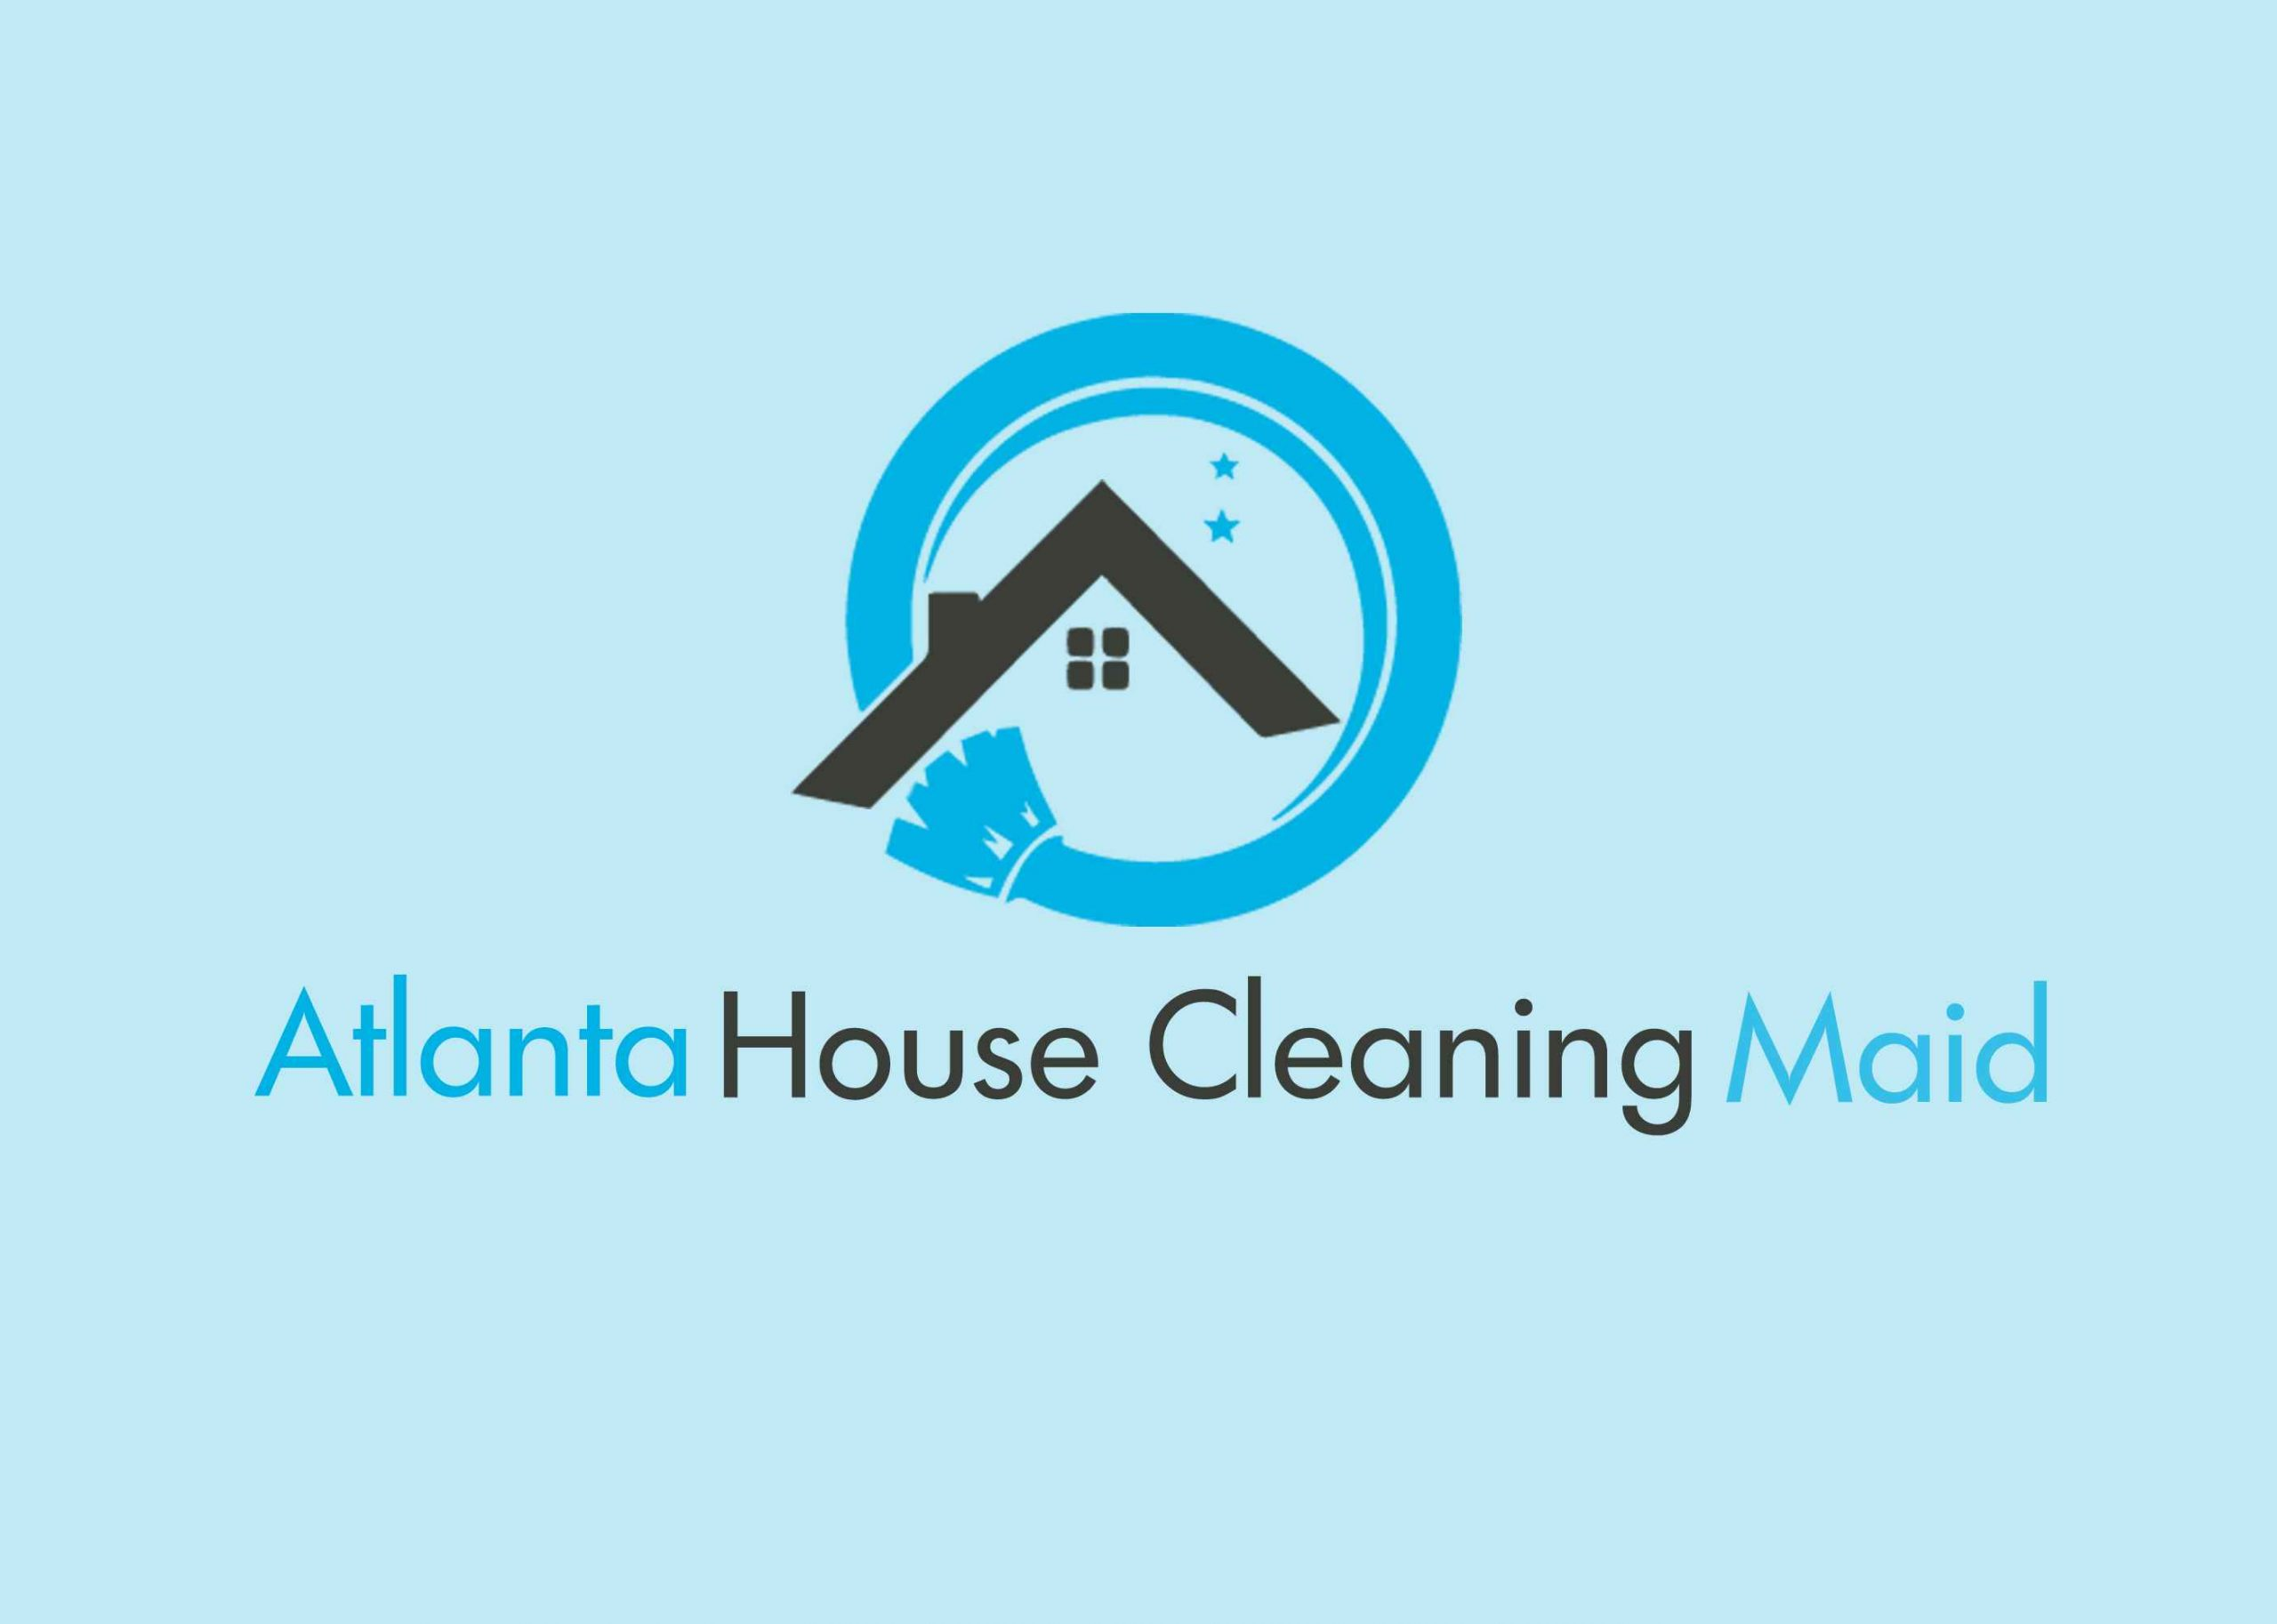 Atlanta House Cleaning Maid